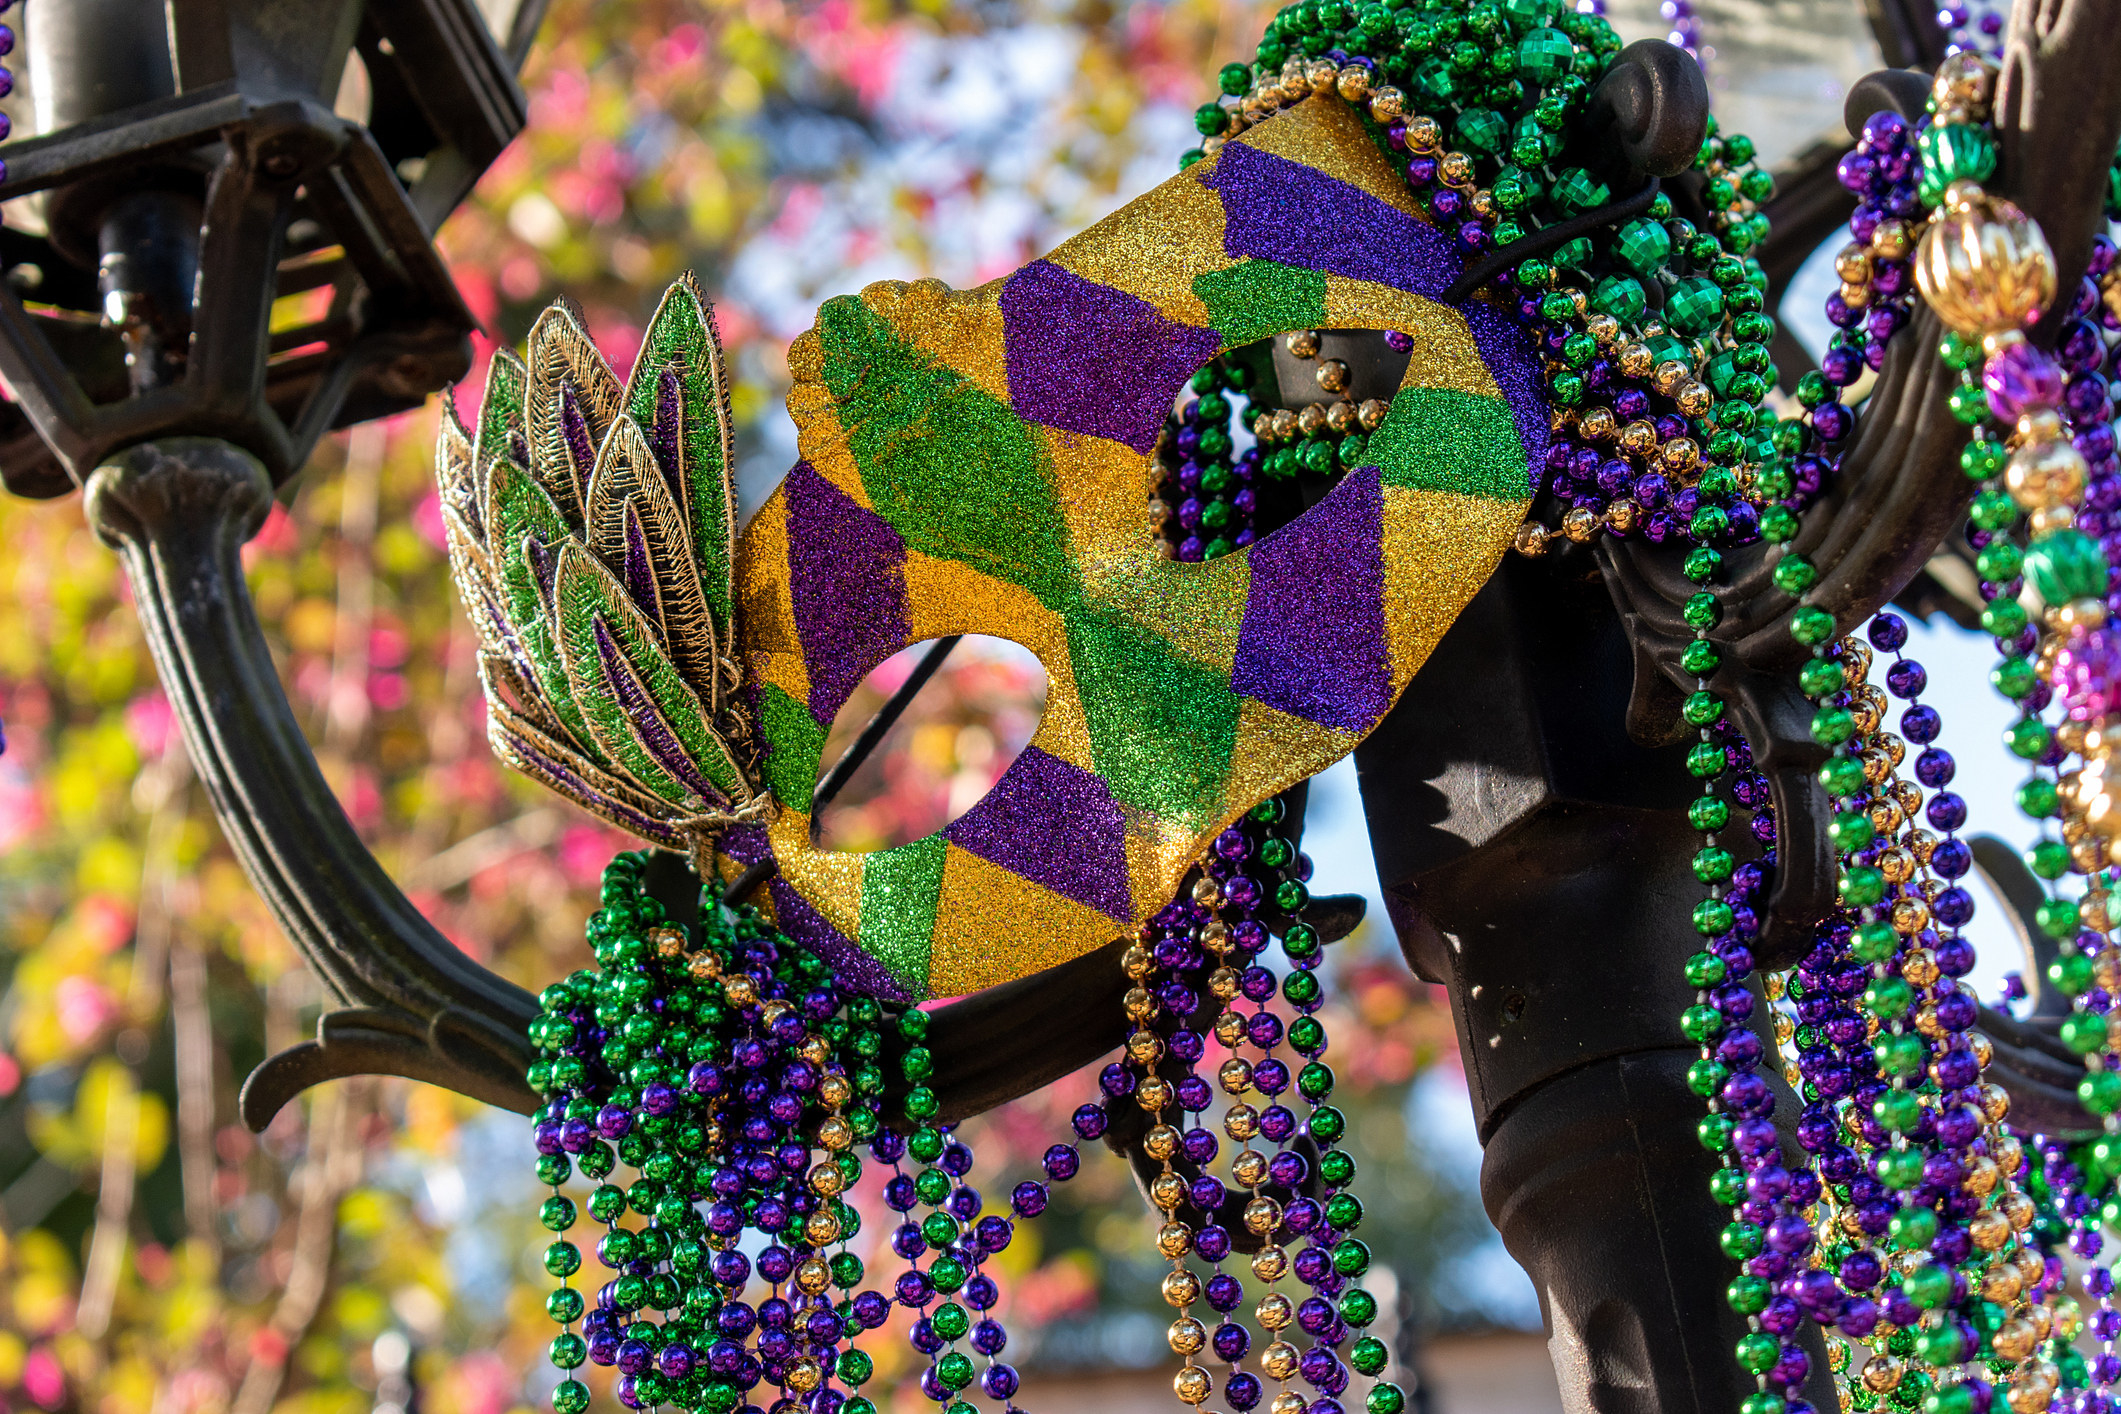 Outdoor Mardi Gras beads and mask on light post